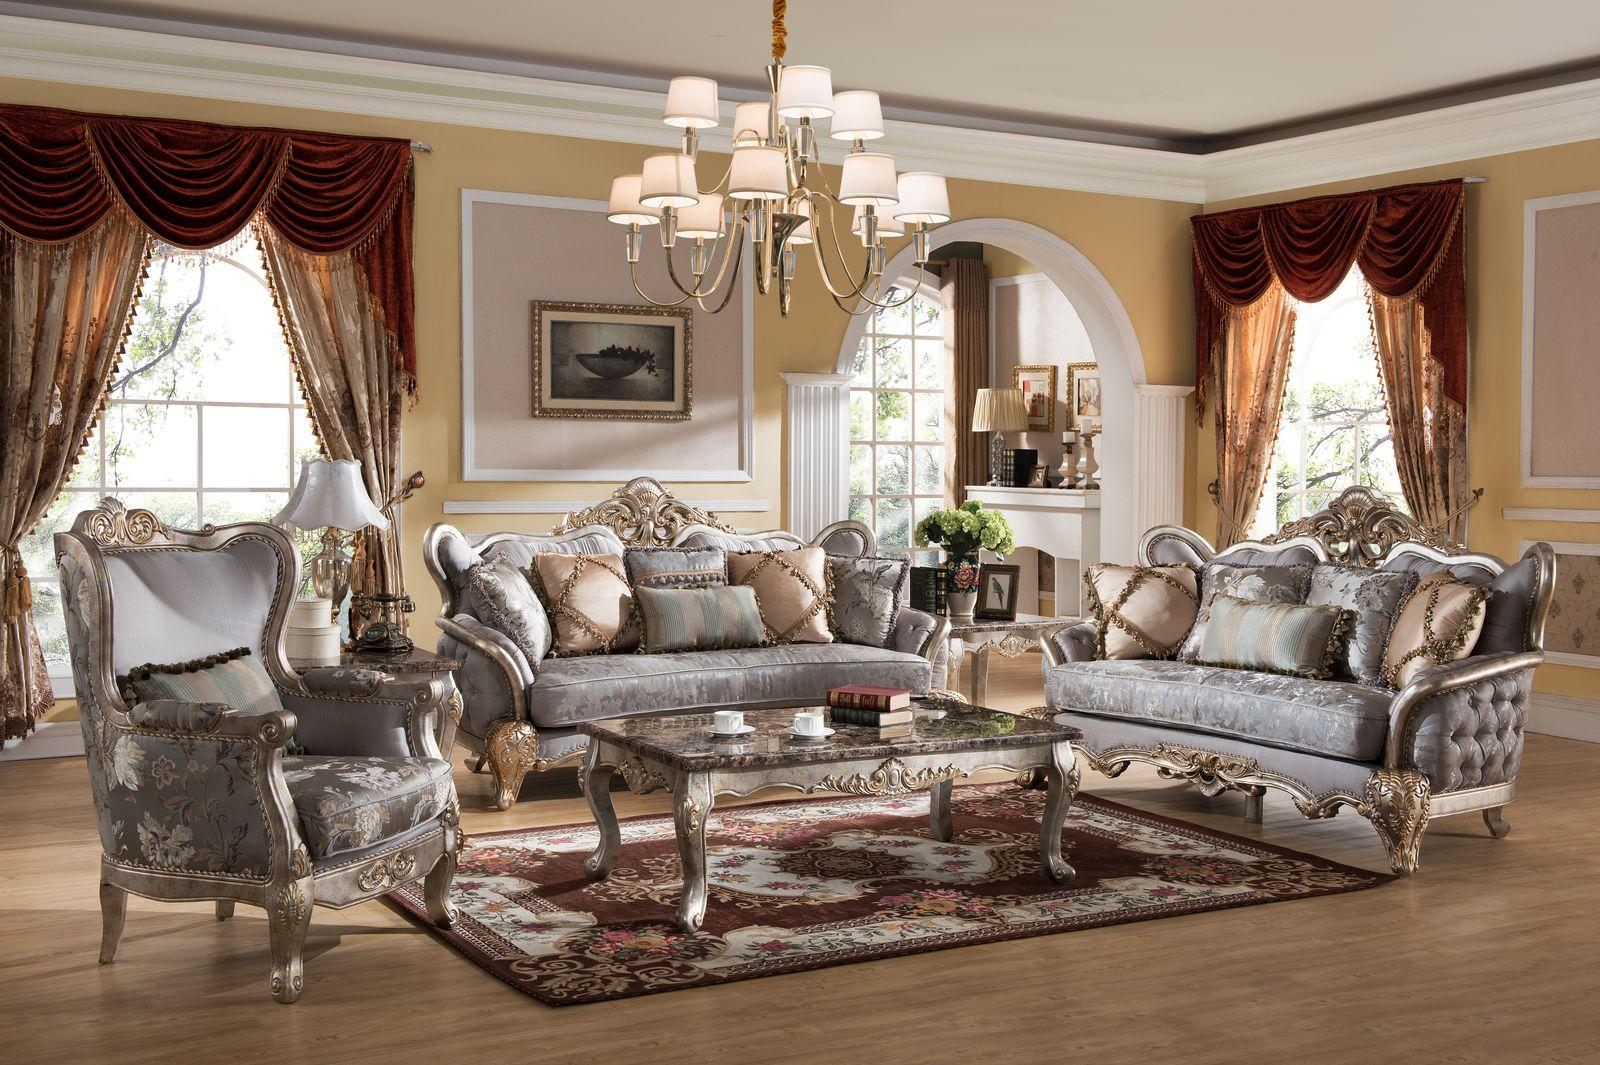 Traditional Metallic Fabric and Fabric, Wood Sofa Loveseat and Chair Set 3 pcs Oprah by Cosmos Furniture